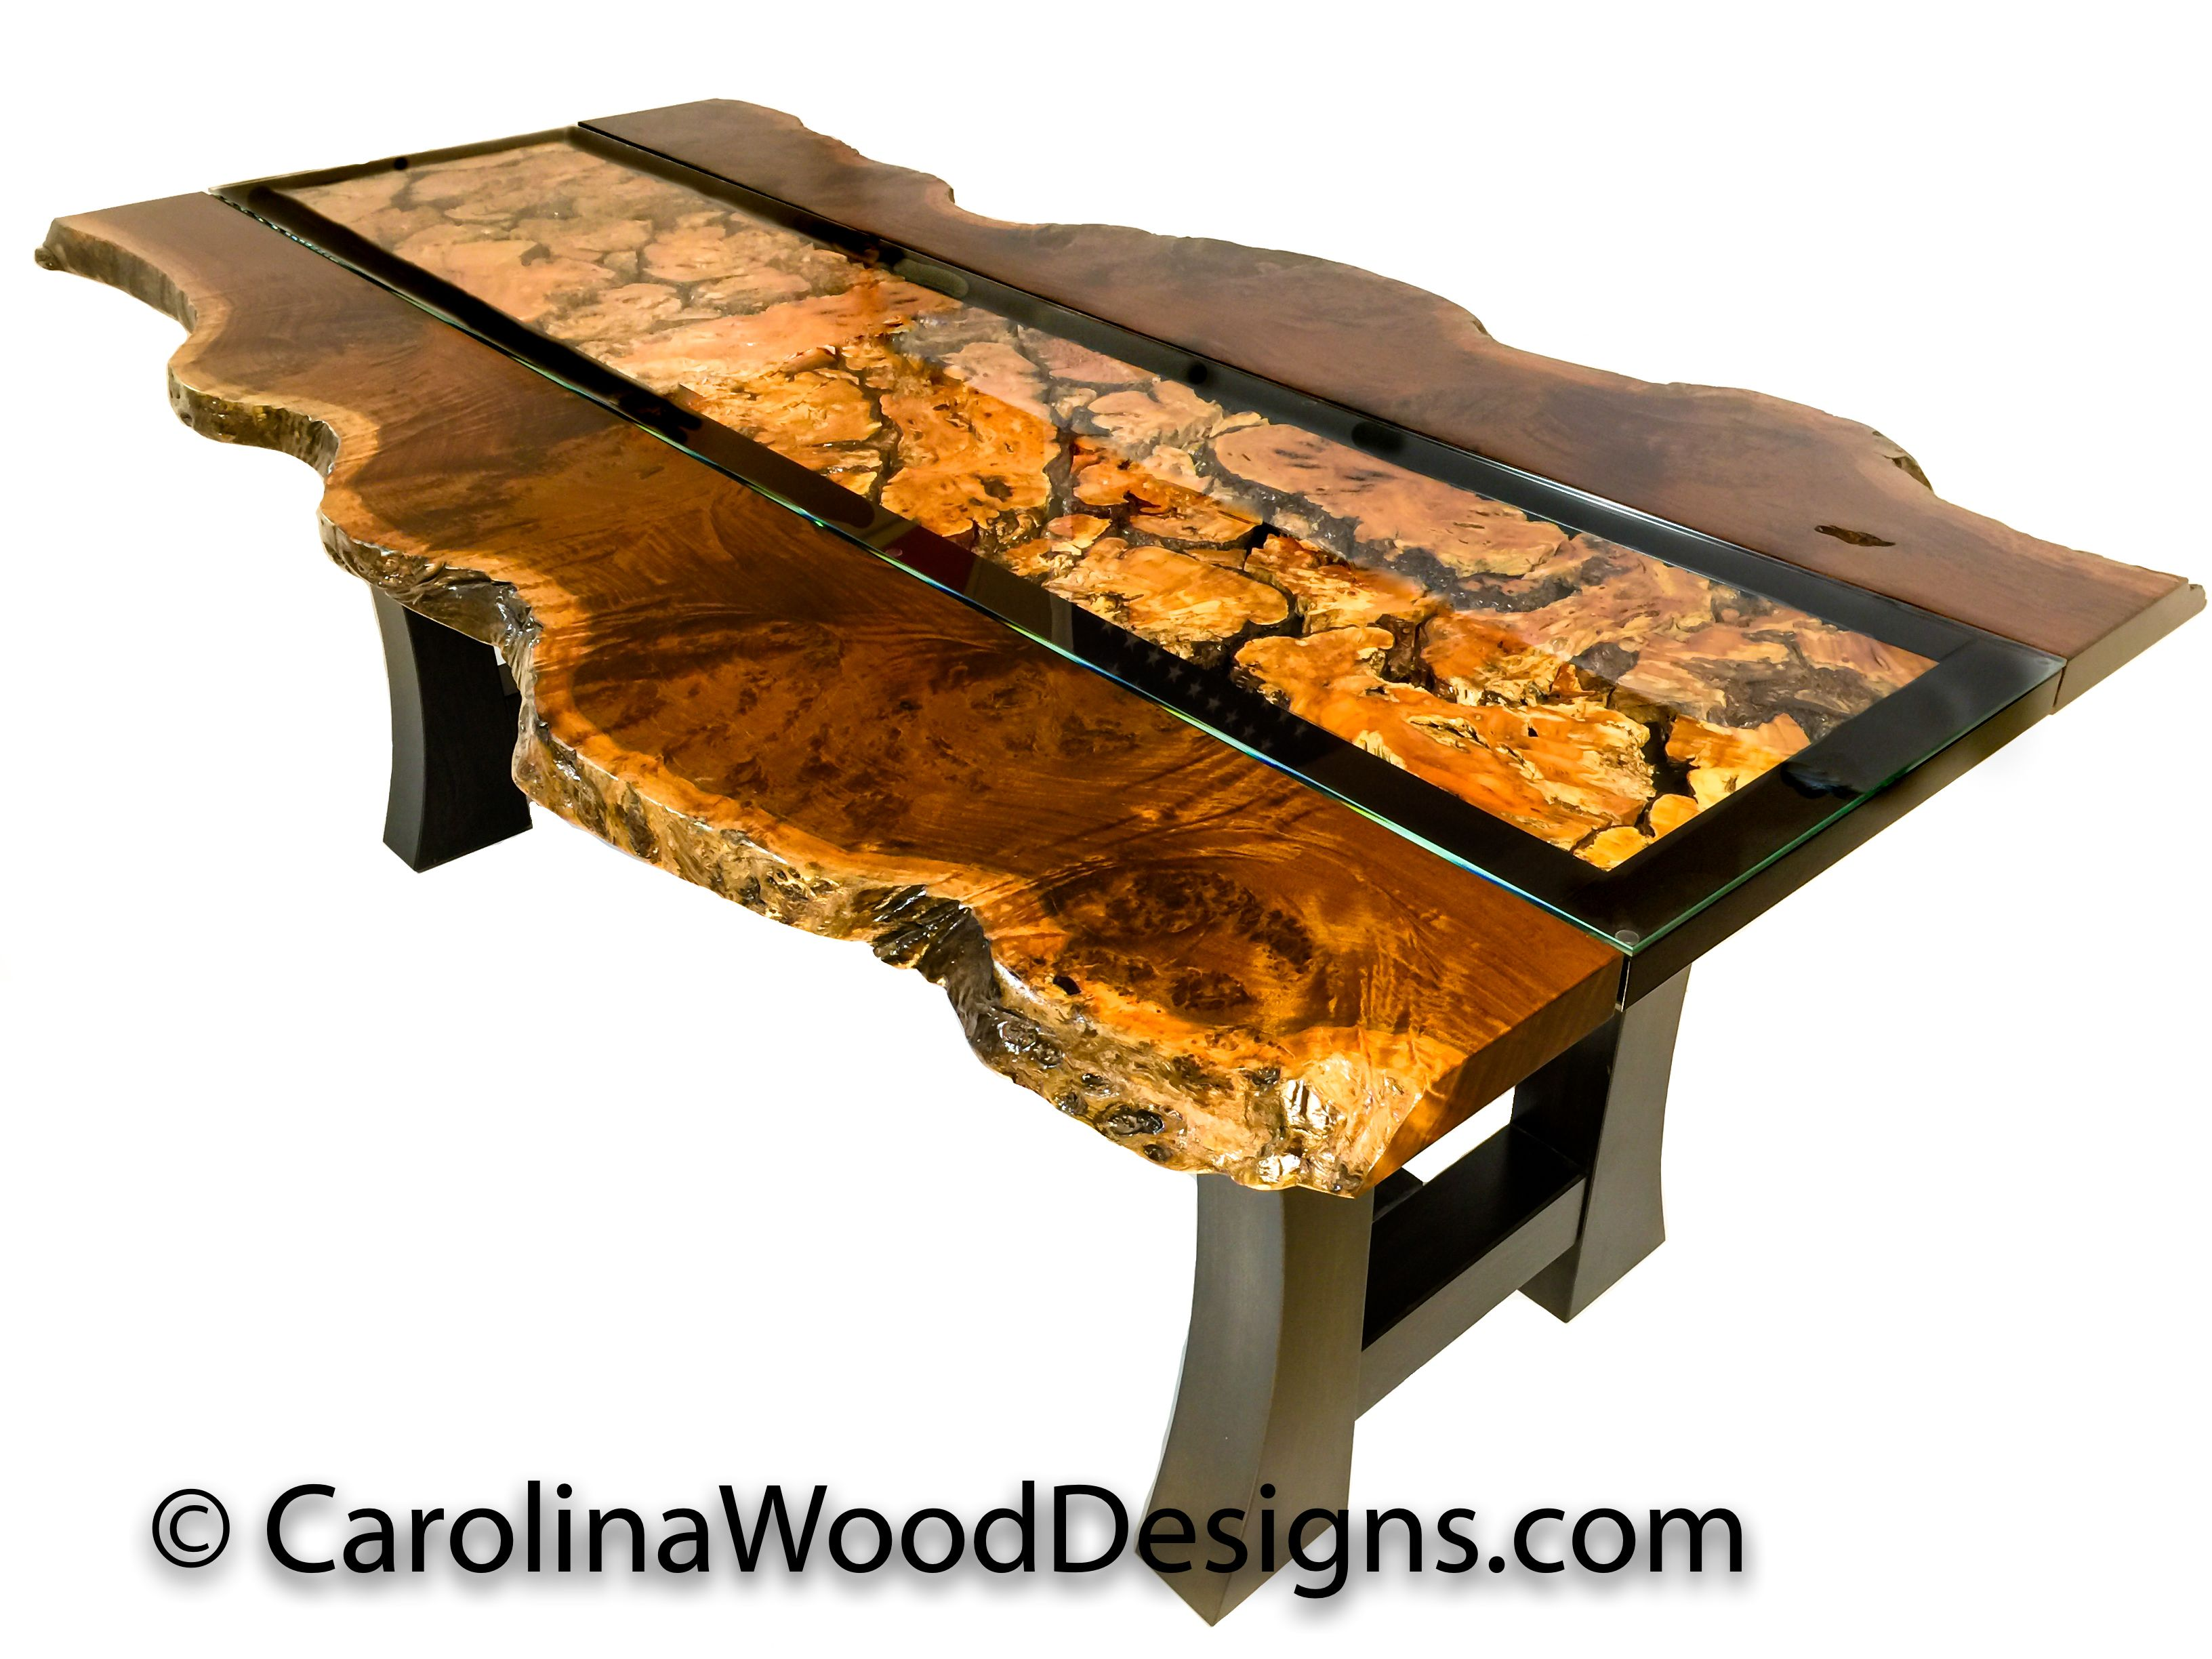 Buy a Hand Crafted Ipe Burl Table With Live Edge made to order